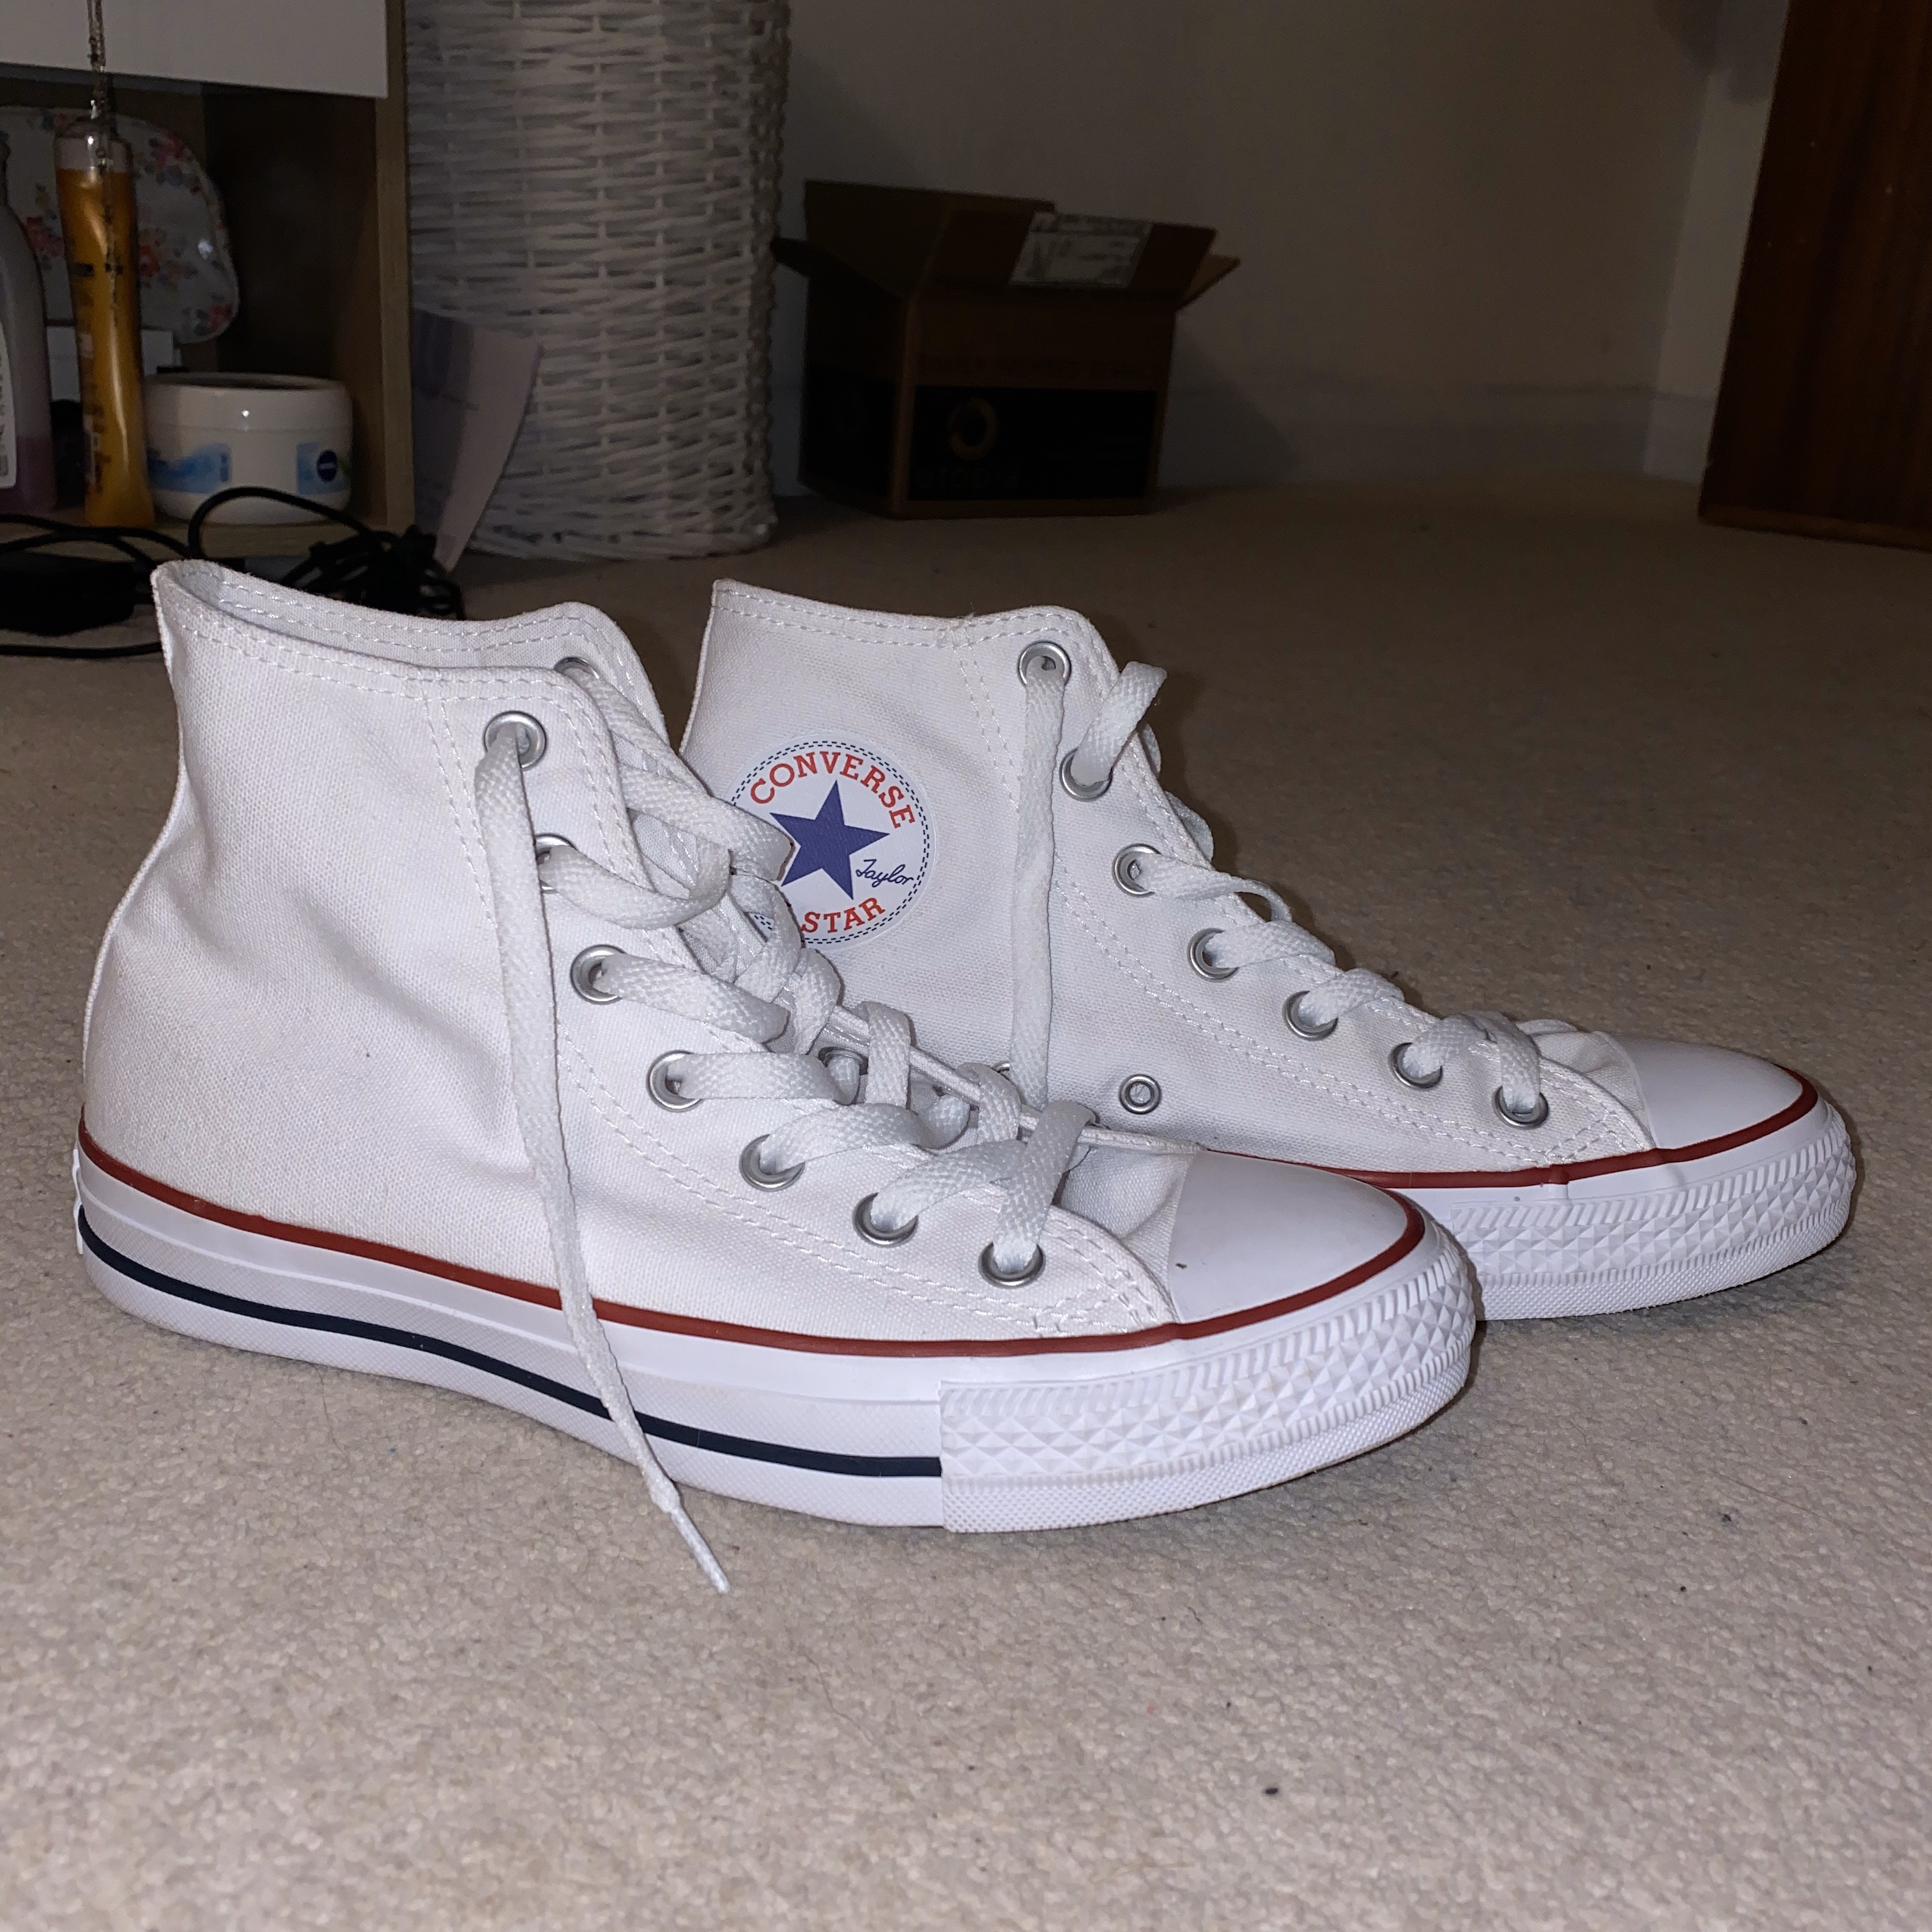 High top white converse    UK size 6